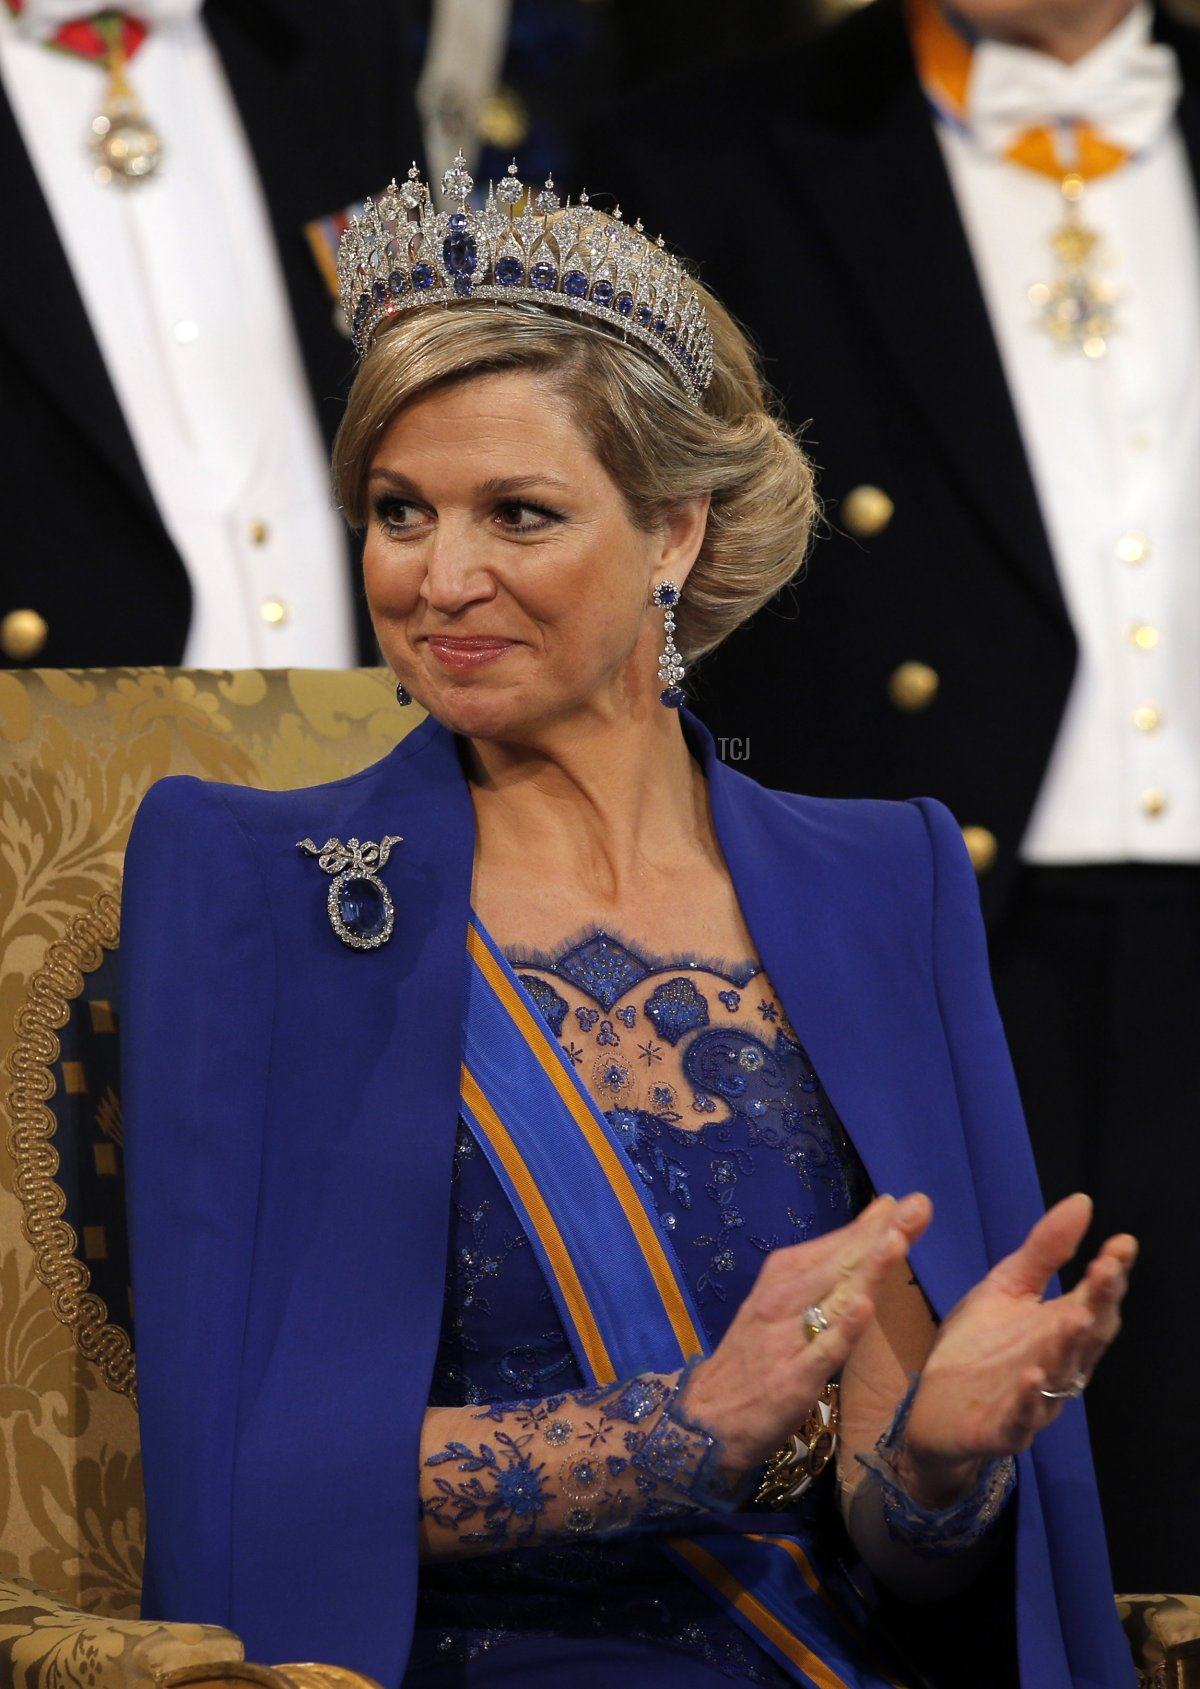 Queen Maxima of the Netherlands sits on her throne during the inauguration ceremony of HM King Willem Alexander of the Netherlands at New Church on April 30, 2013 in Amsterdam, Netherlands